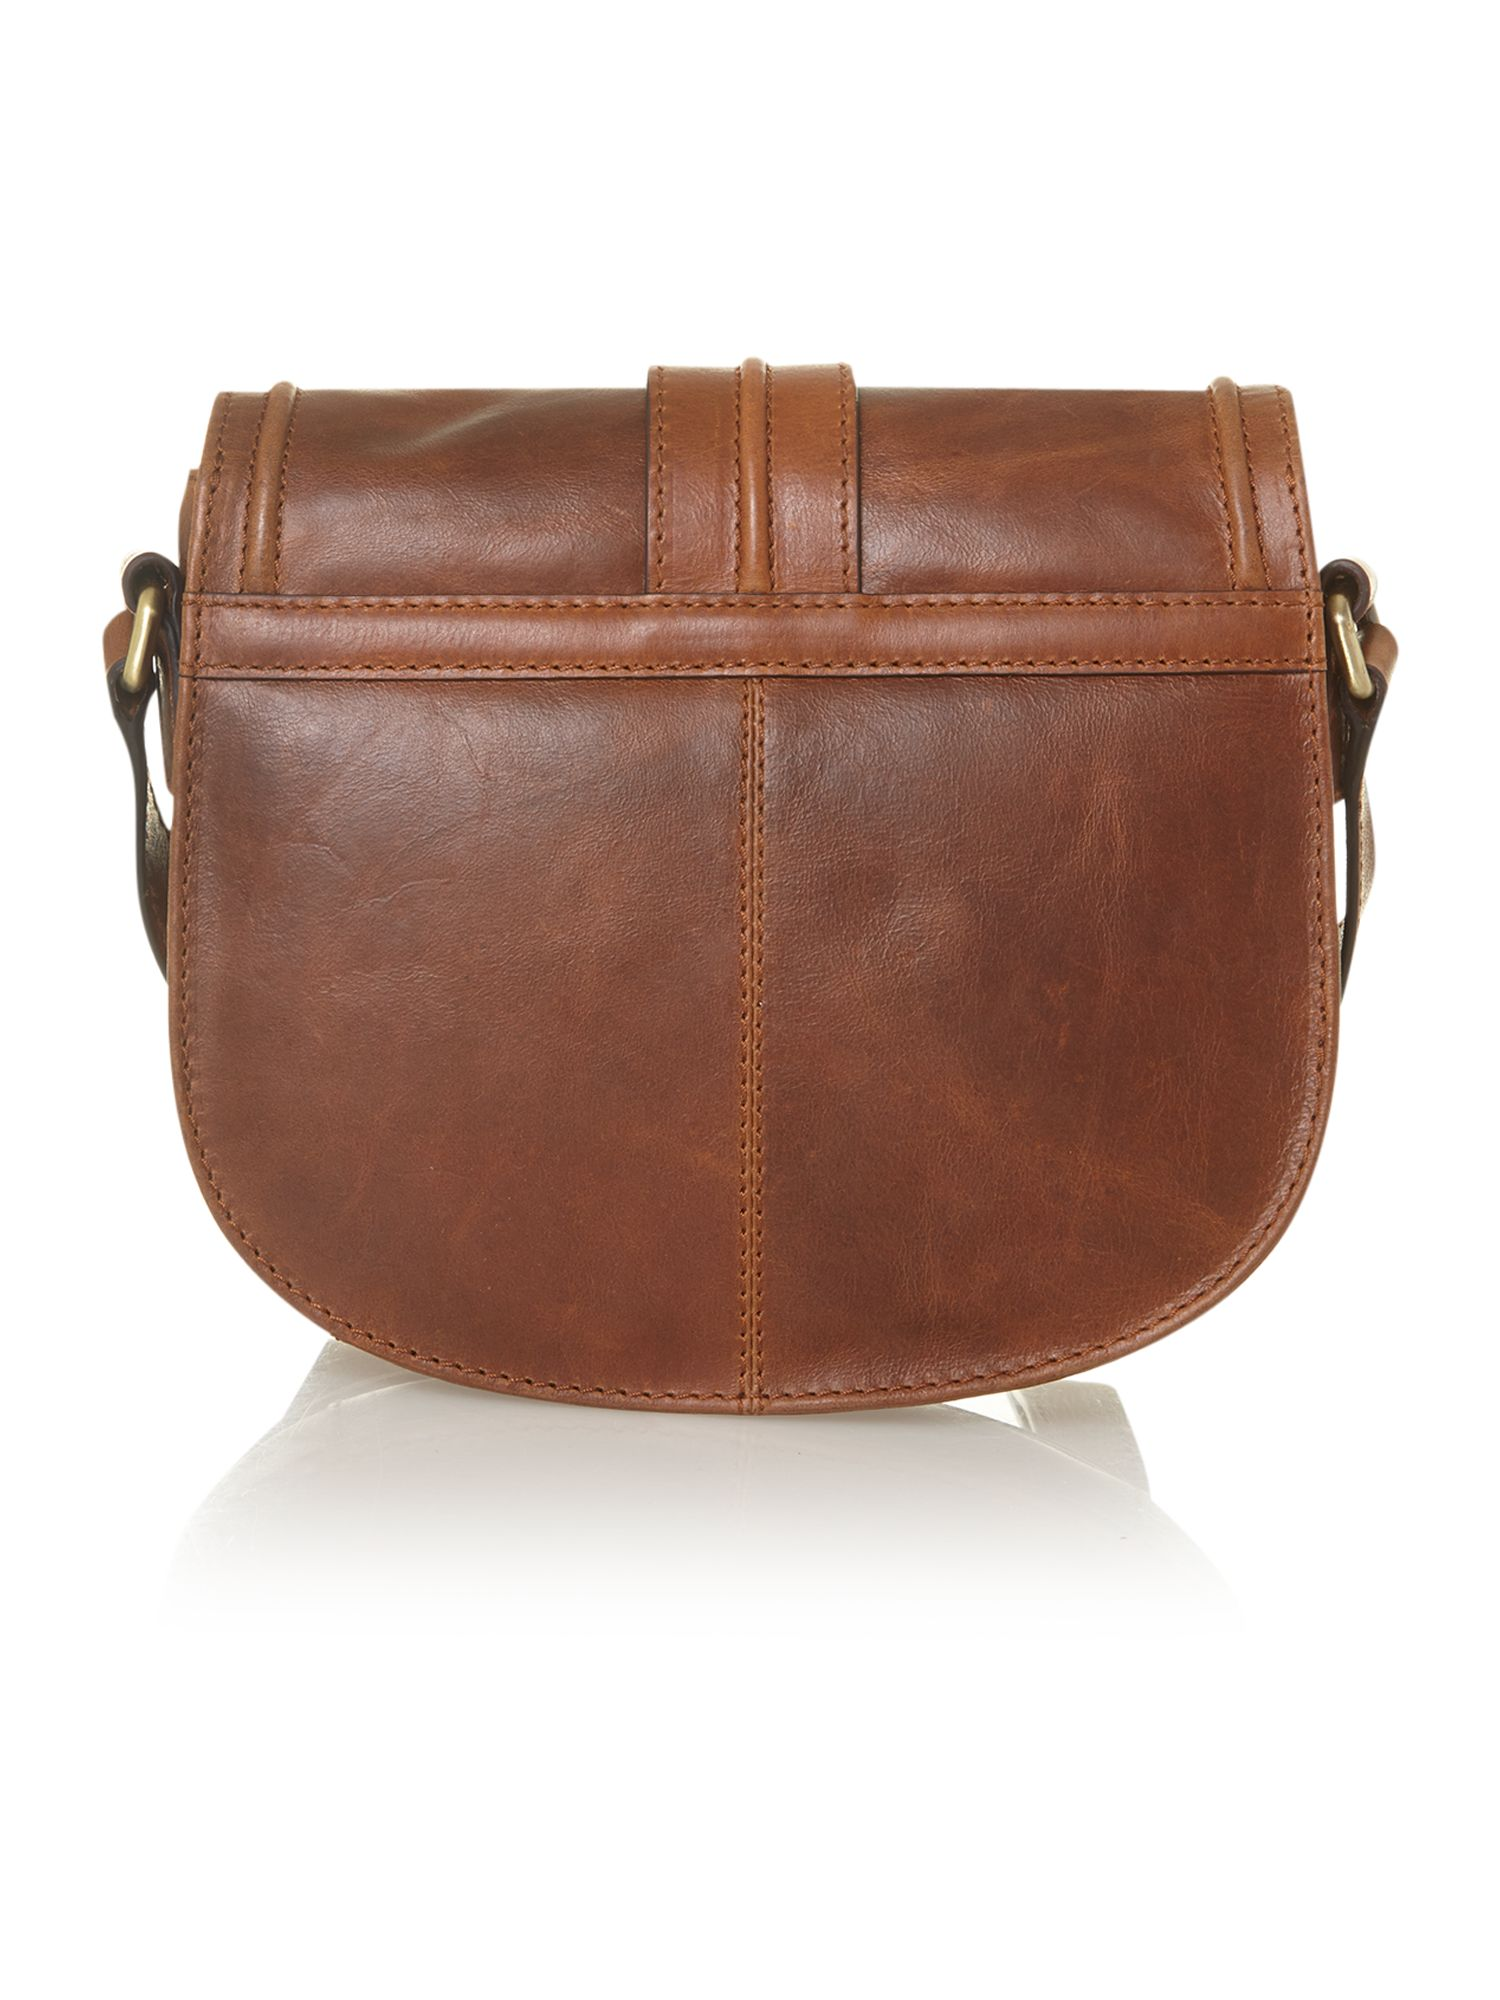 Saddle cross body bag